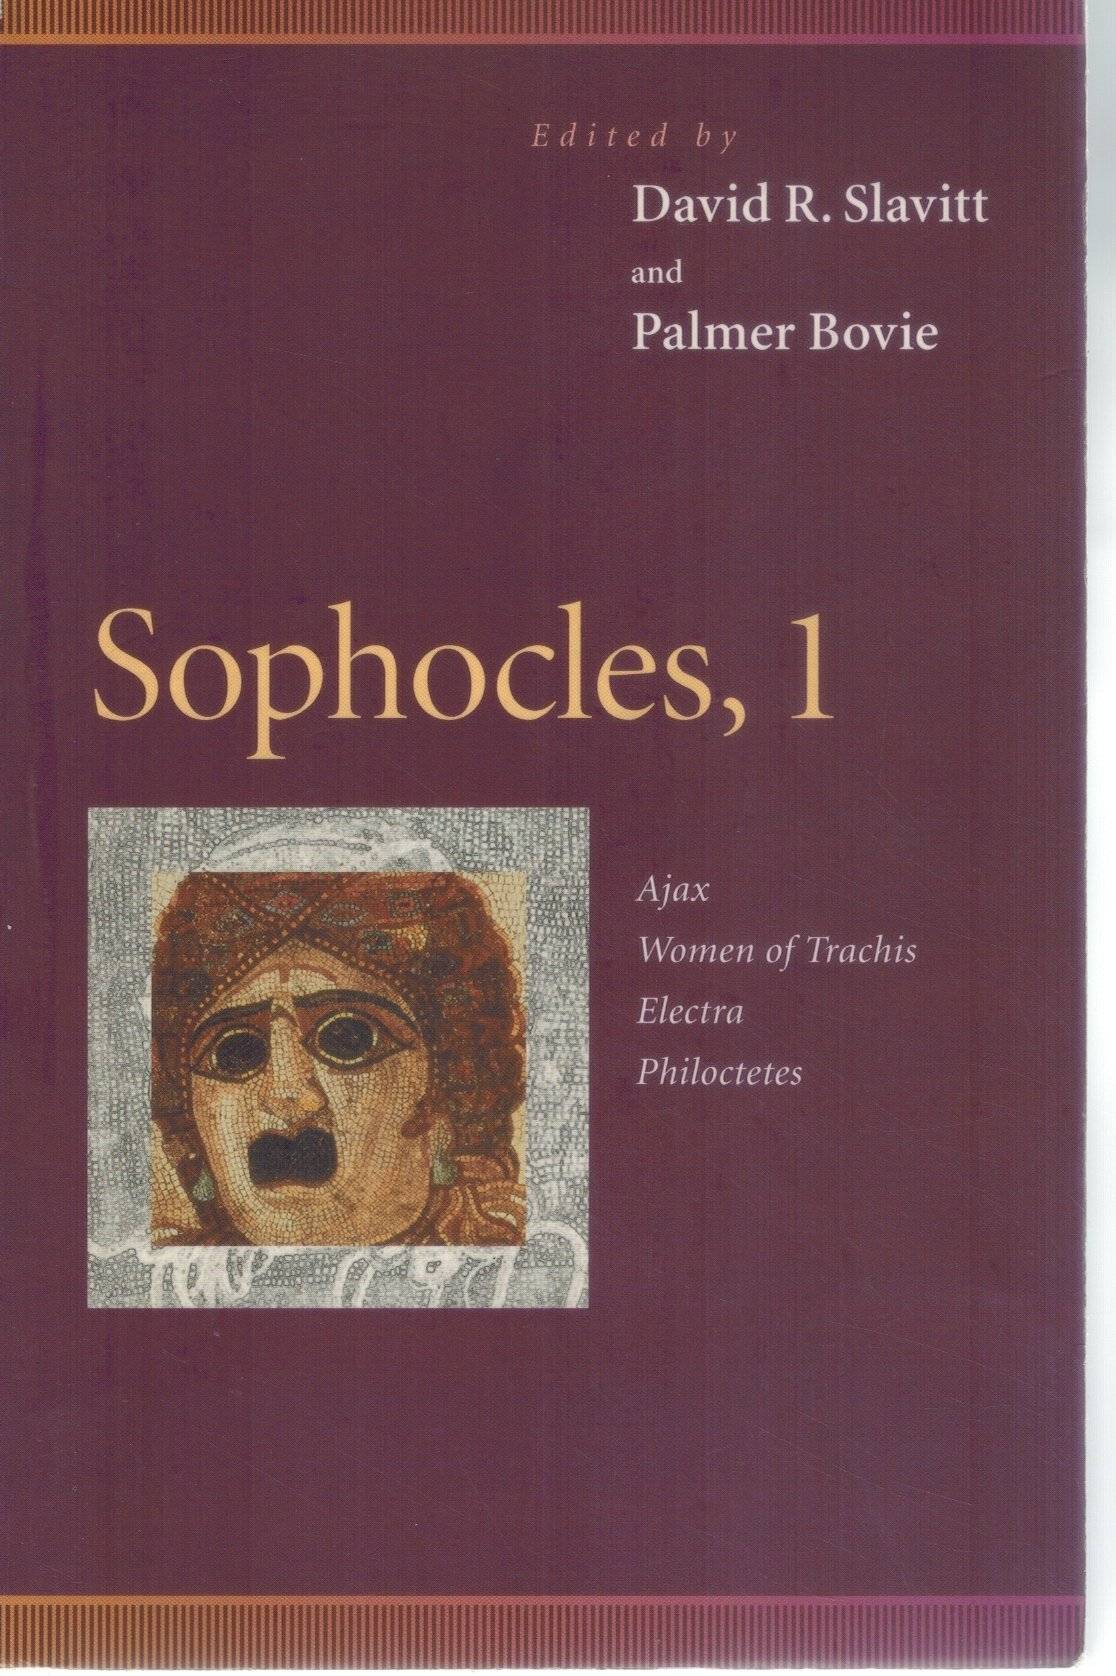 Sophocles, 1   Ajax, Women of Trachis, Electra, Philoctetes  by Slavitt